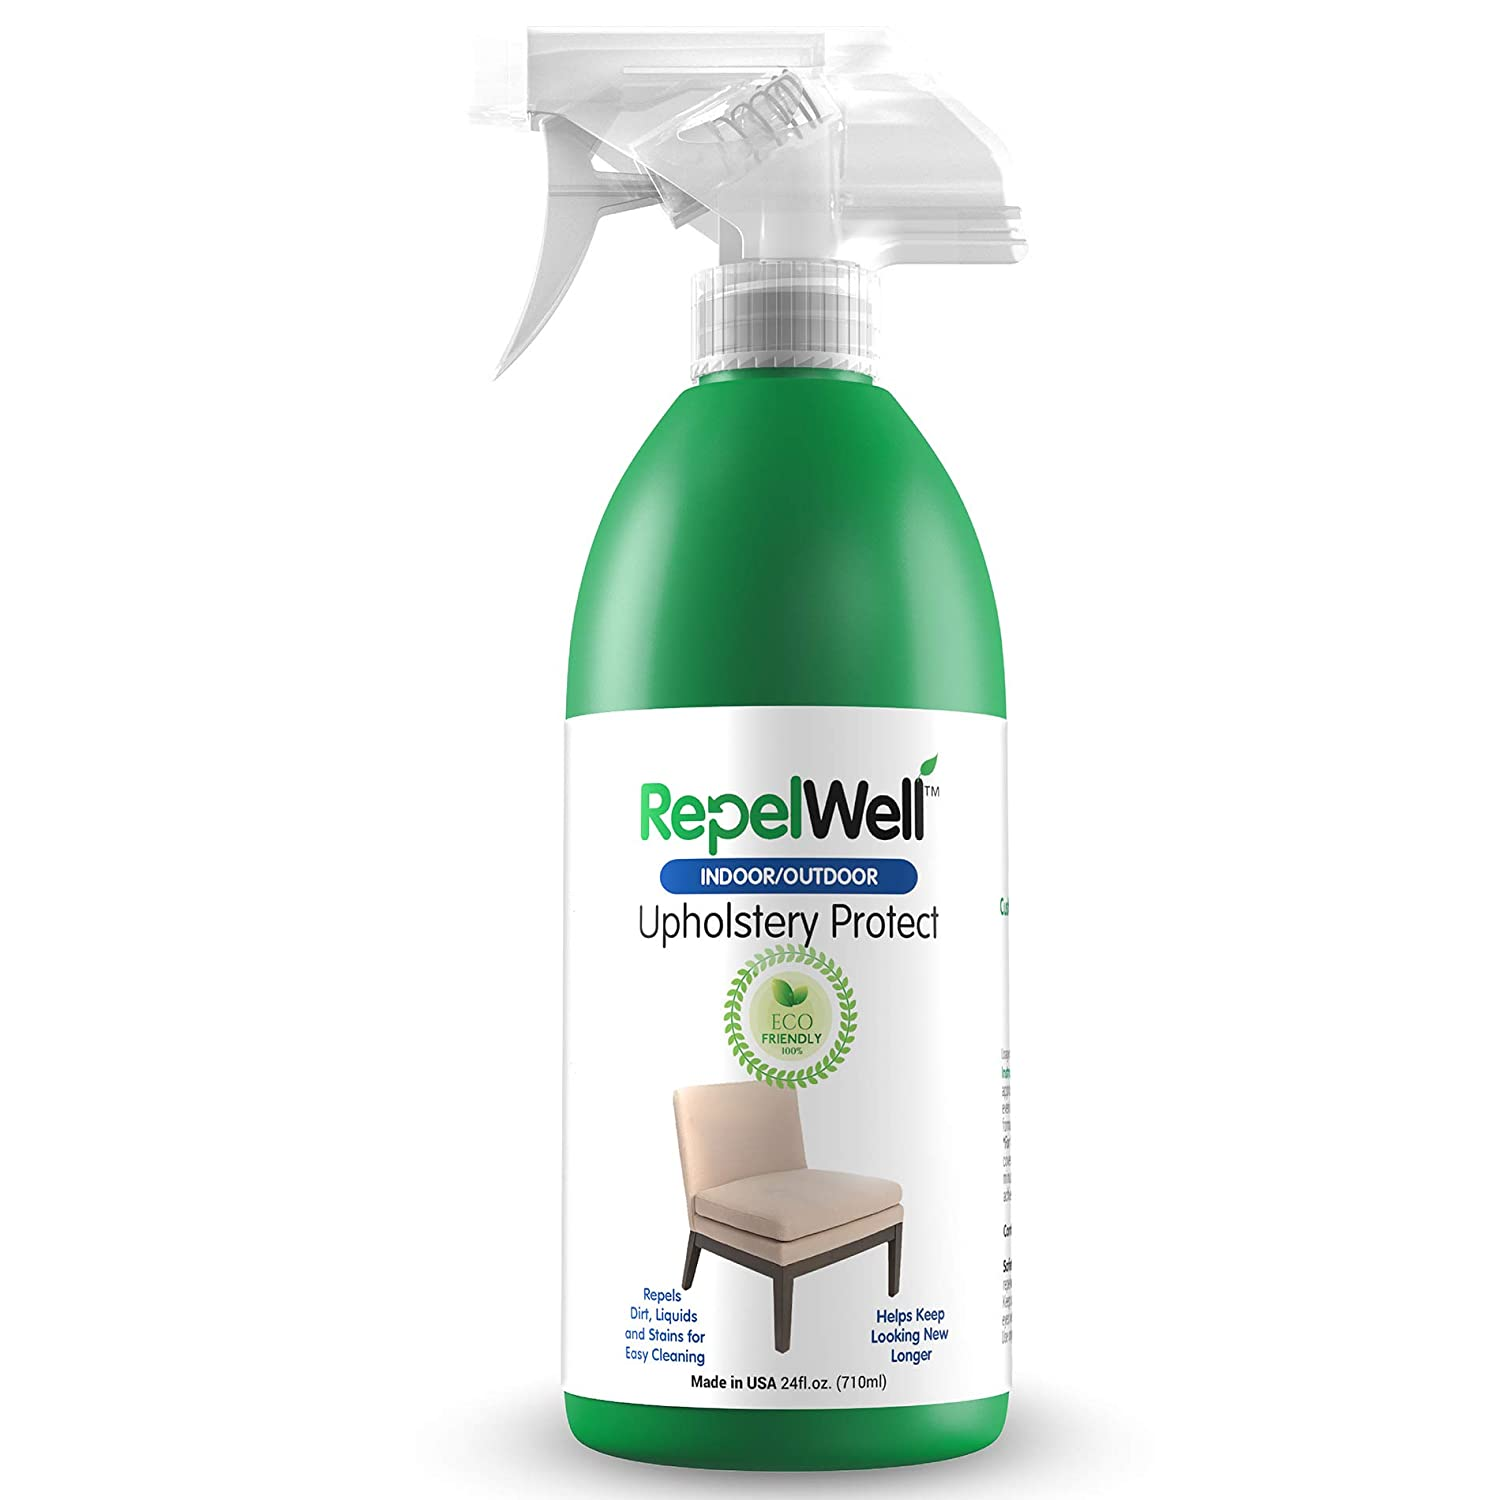 RepelWell Upholstery Protect Stain & Water Repellent Spray (24oz) Eco-Friendly, Pet-Safe Spray Keeps Your Fabric, Leather & Suede Upholstery Looking Like New